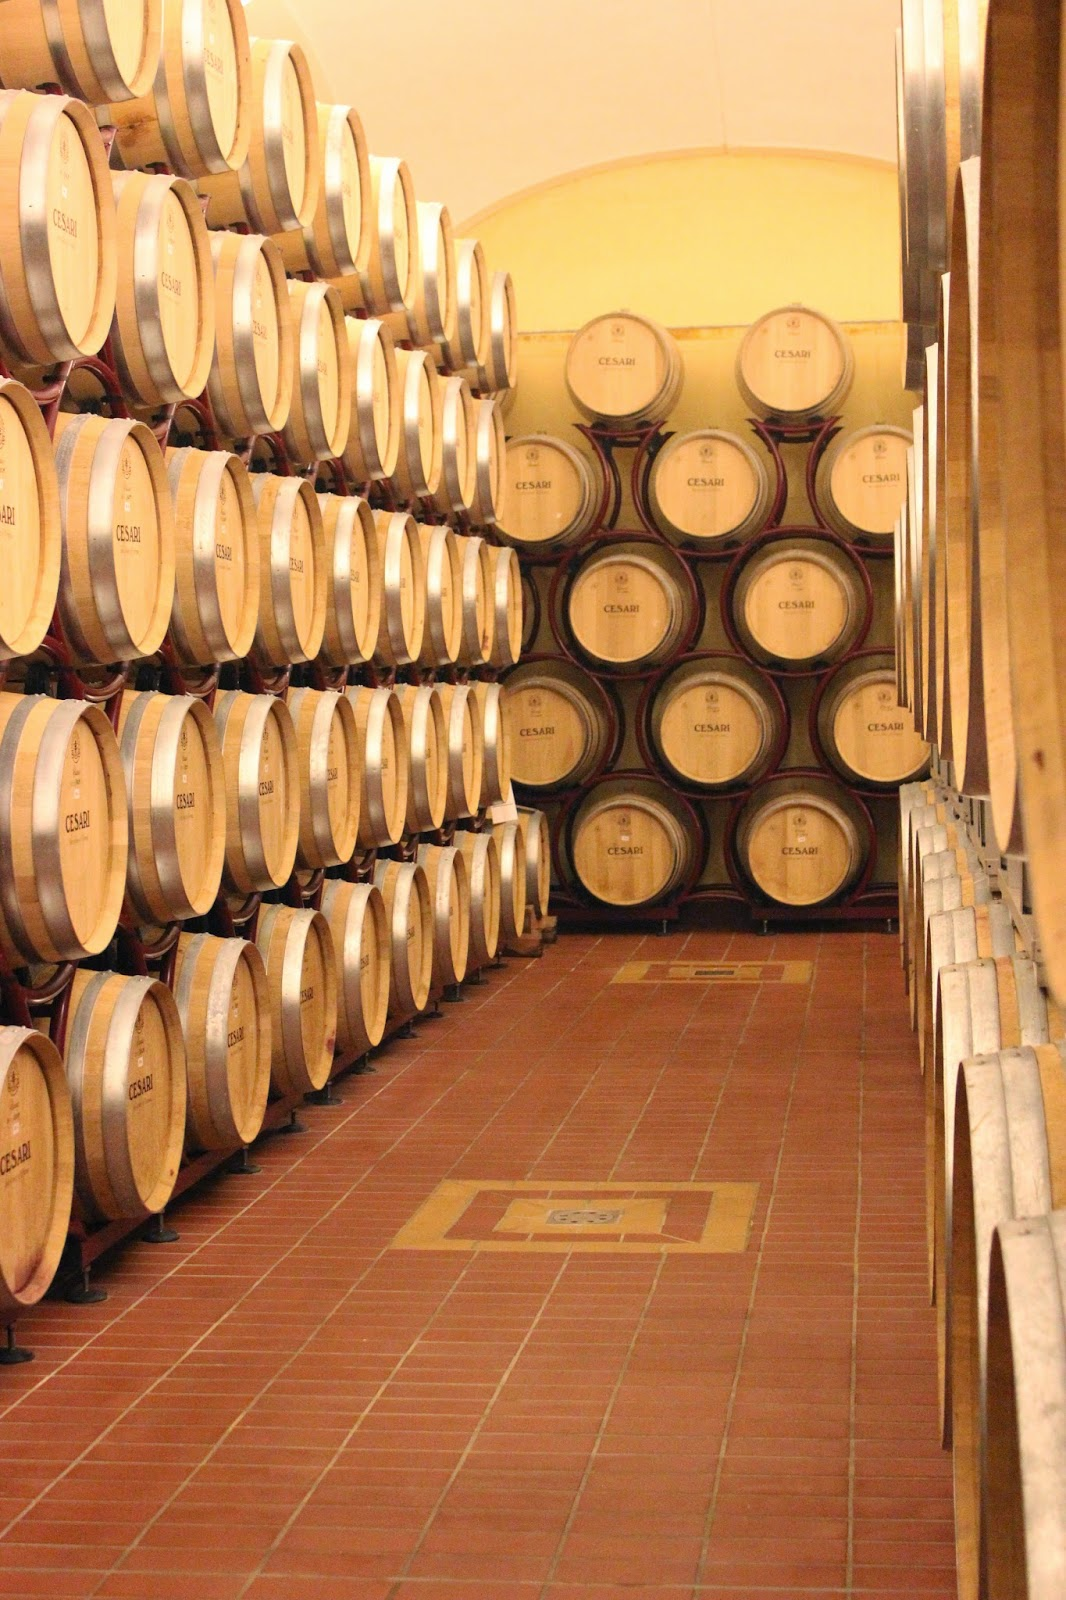 Wine cellar of Cesari winery